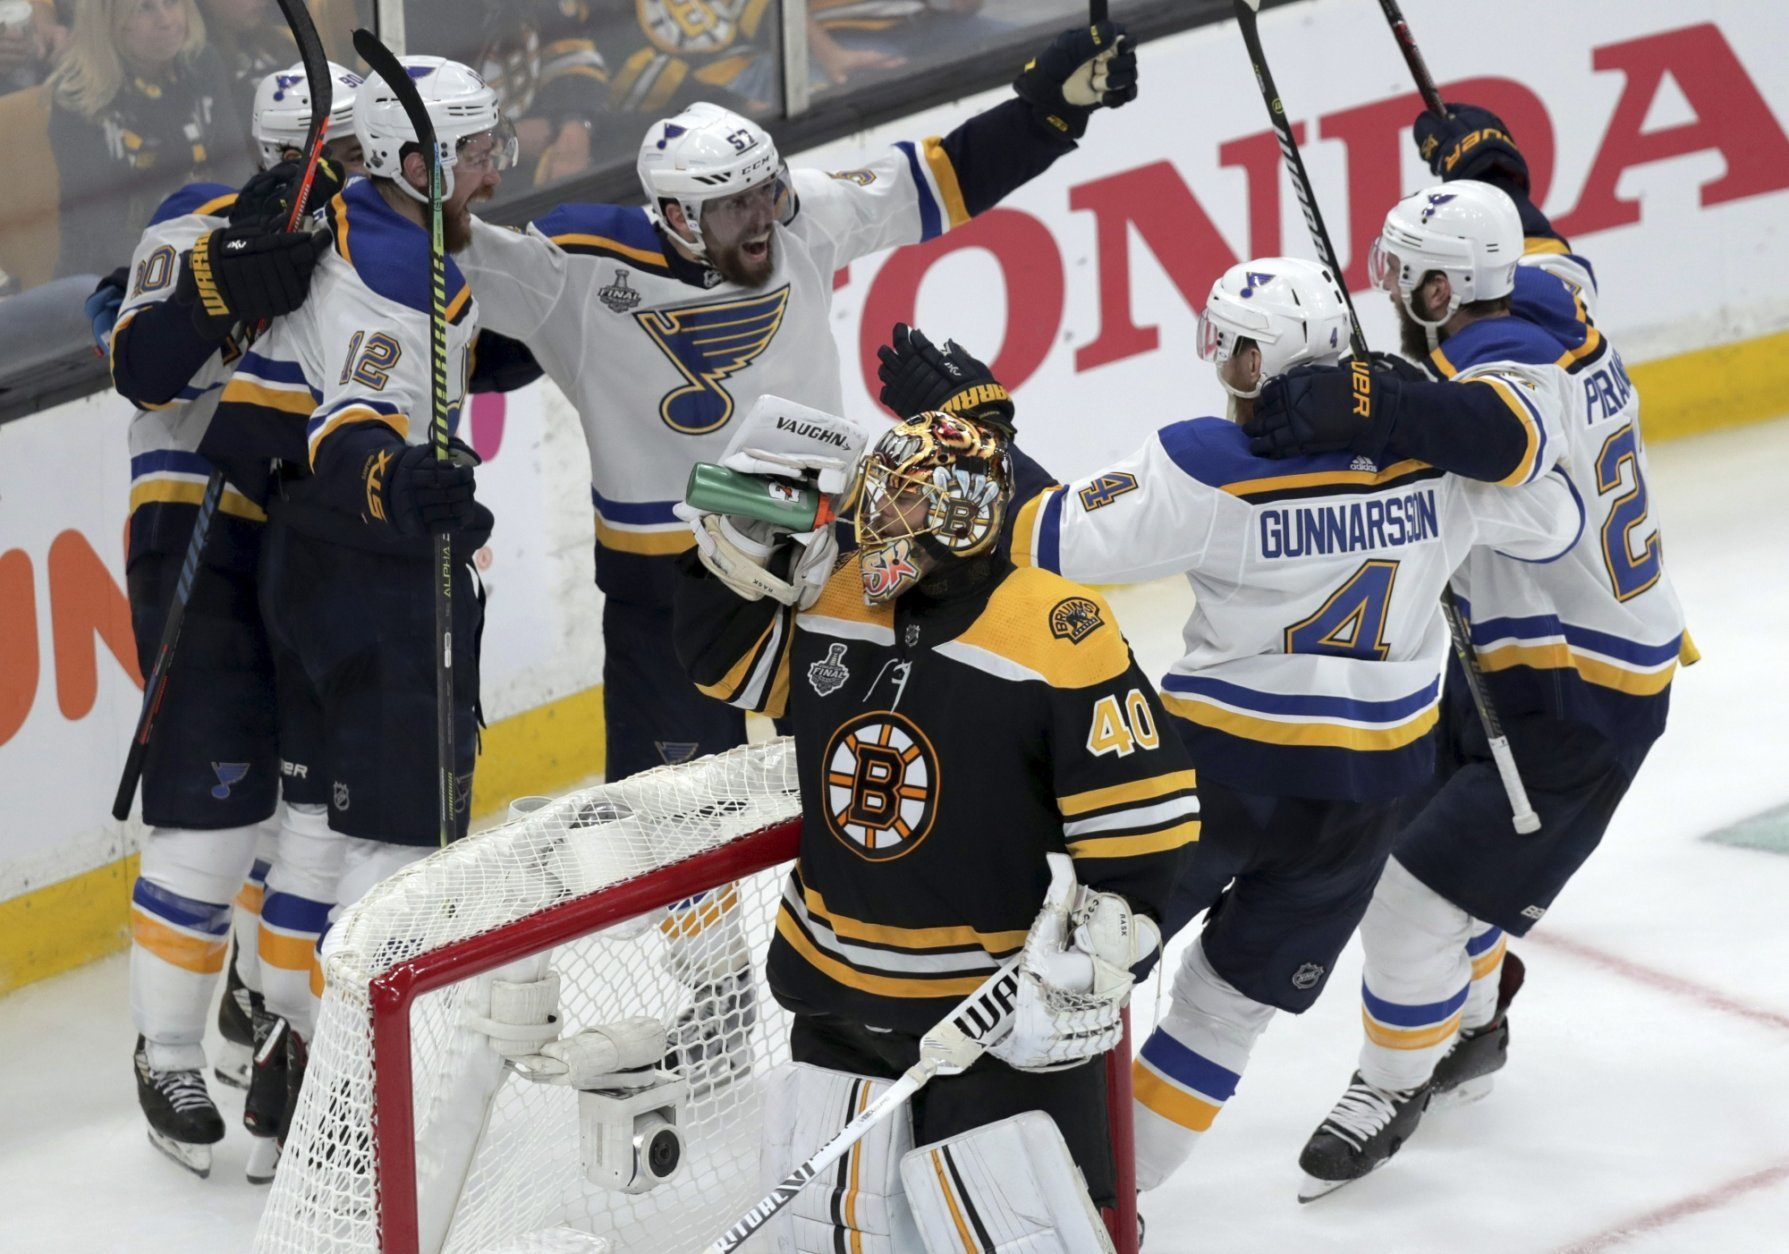 St. Louis Blues' Zach Sanford (12) celebrates his goal with teammates behind Boston Bruins goaltender Tuukka Rask (40), of Finland, during the third period in Game 7 of the NHL hockey Stanley Cup Final, Wednesday, June 12, 2019, in Boston. (AP Photo/Charles Krupa)